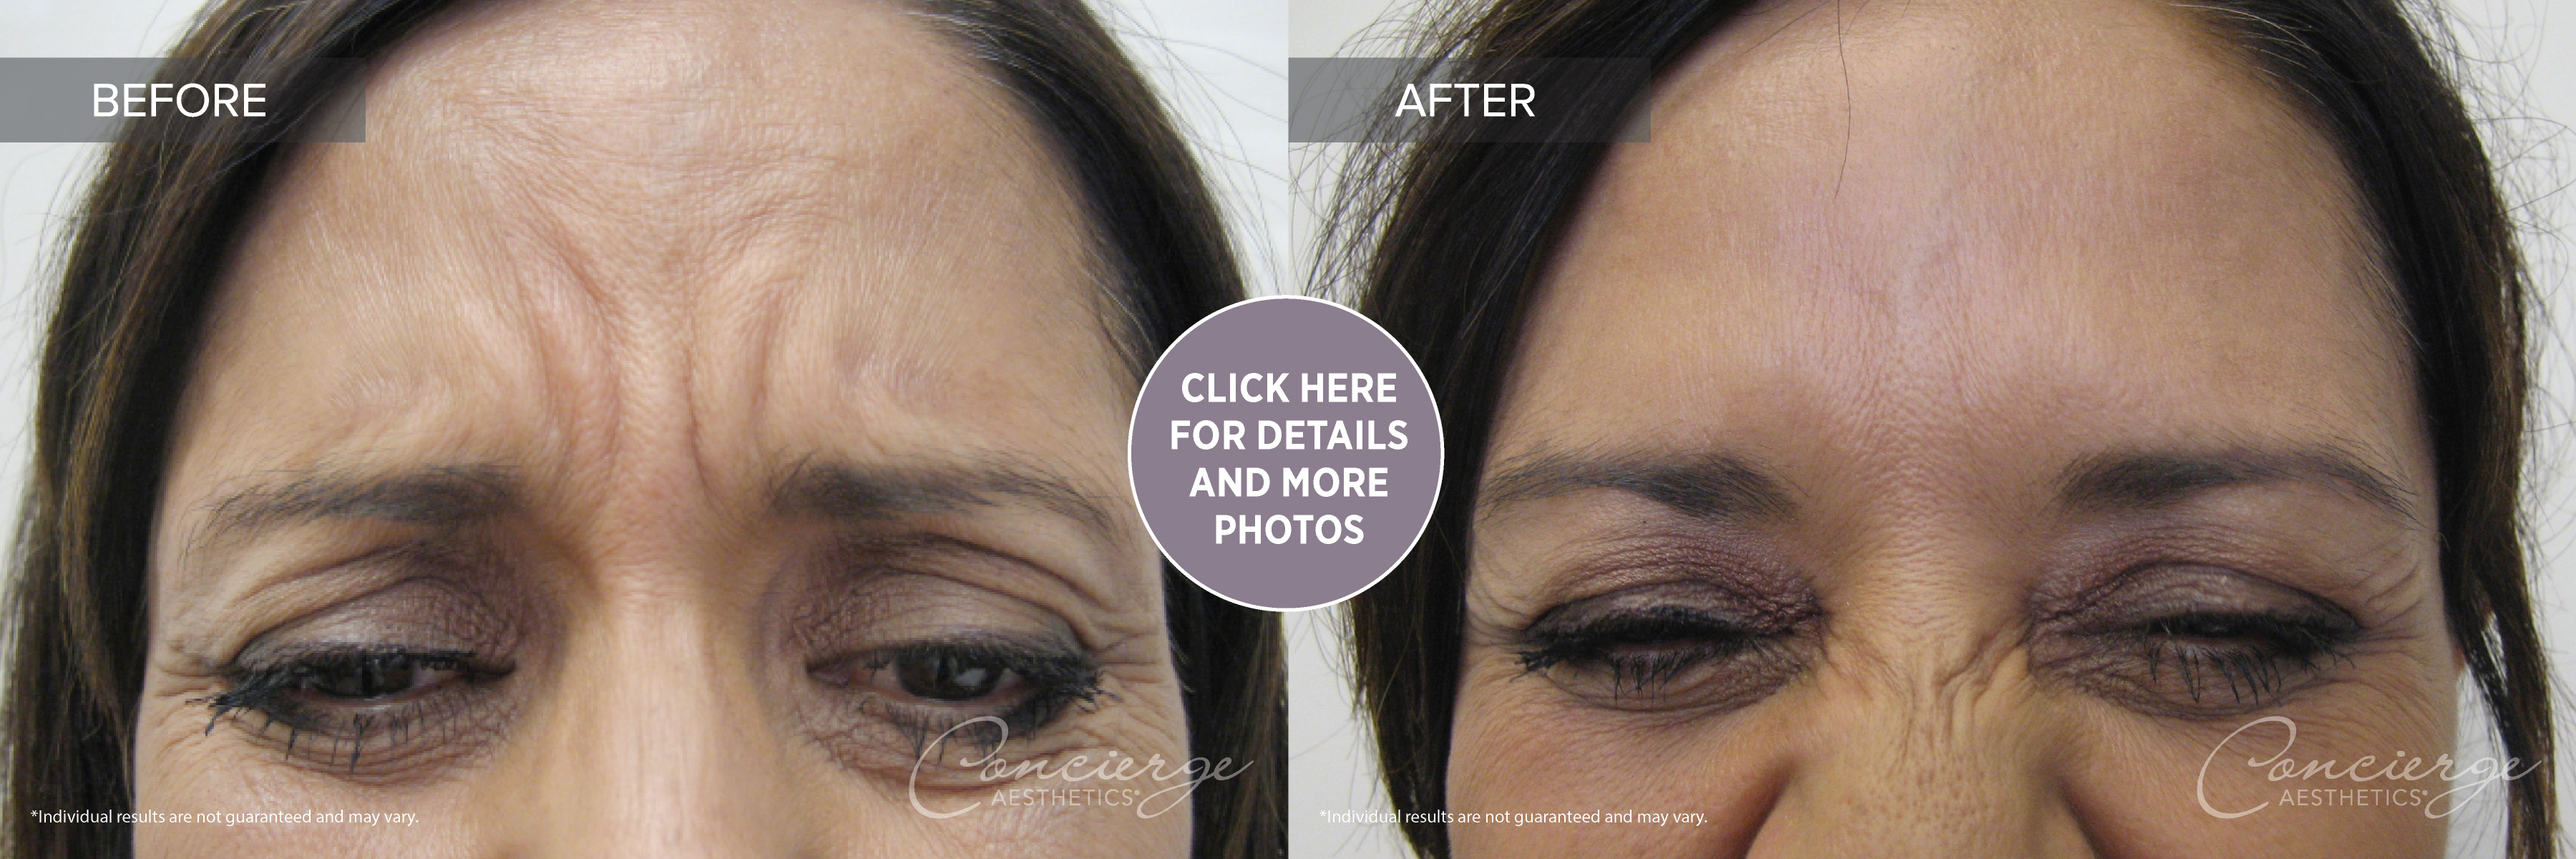 Botox Cosmetic - Before and After Photos